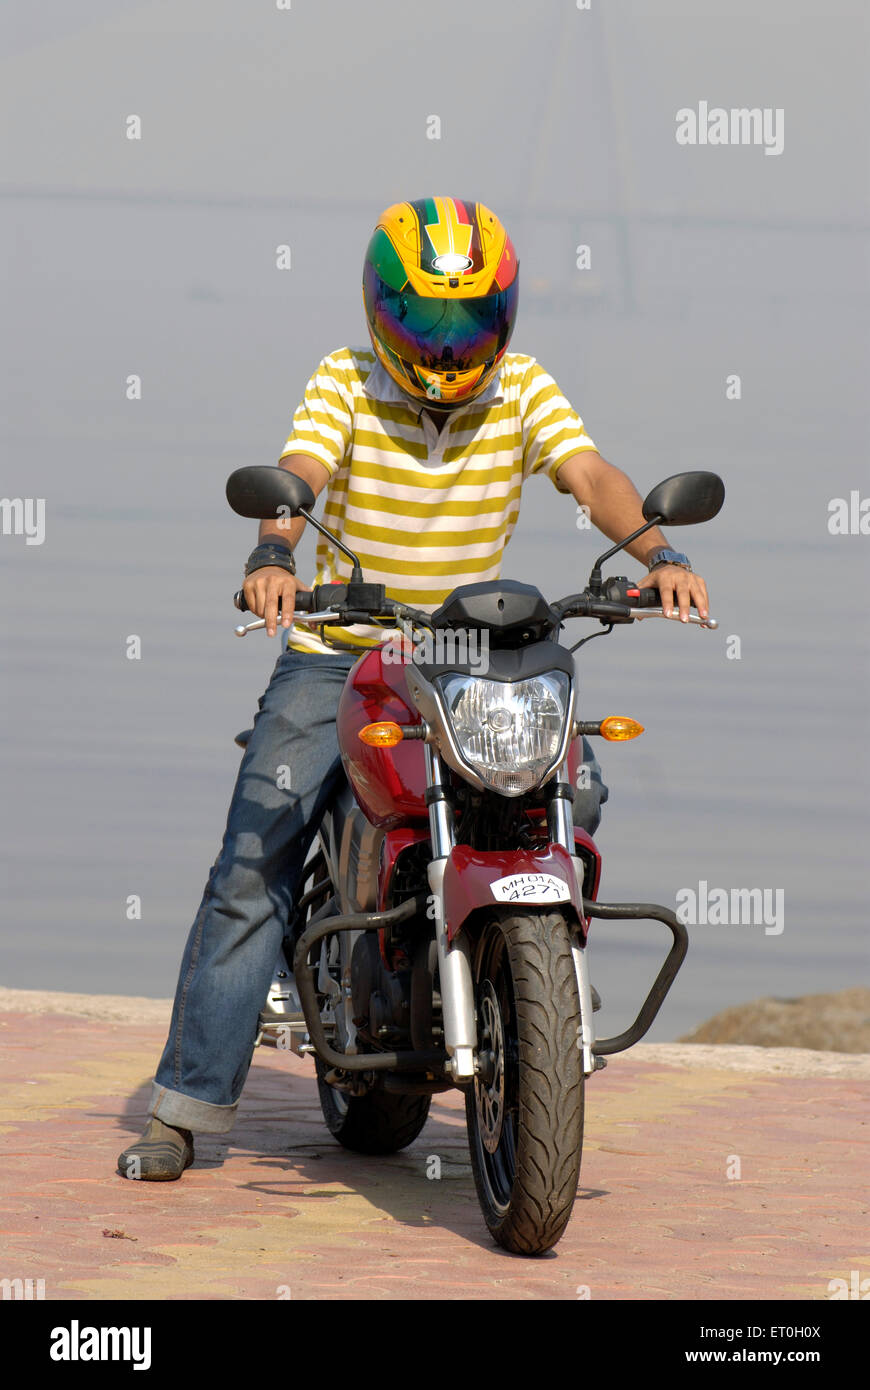 Young boy in helmet riding red coloured yamaha fz motorcycle 150cc sport bike ; Bombay Mumbai ; Maharashtra ; India - Stock Image